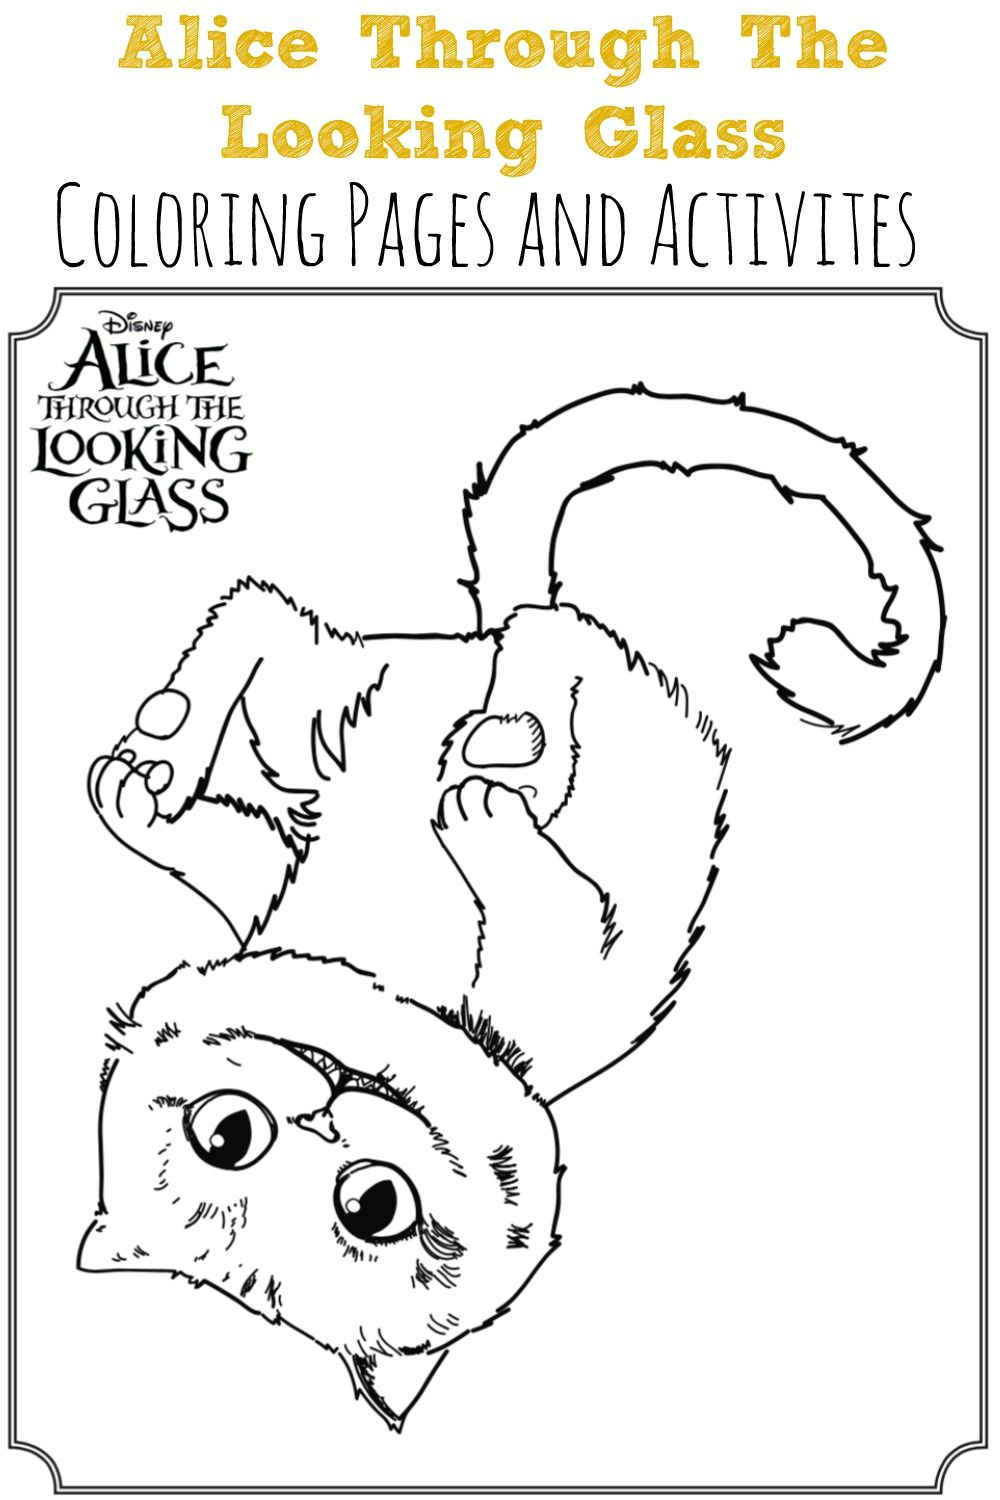 Alice Through The Looking Glass Coloring Sheets | Best of Simply ...